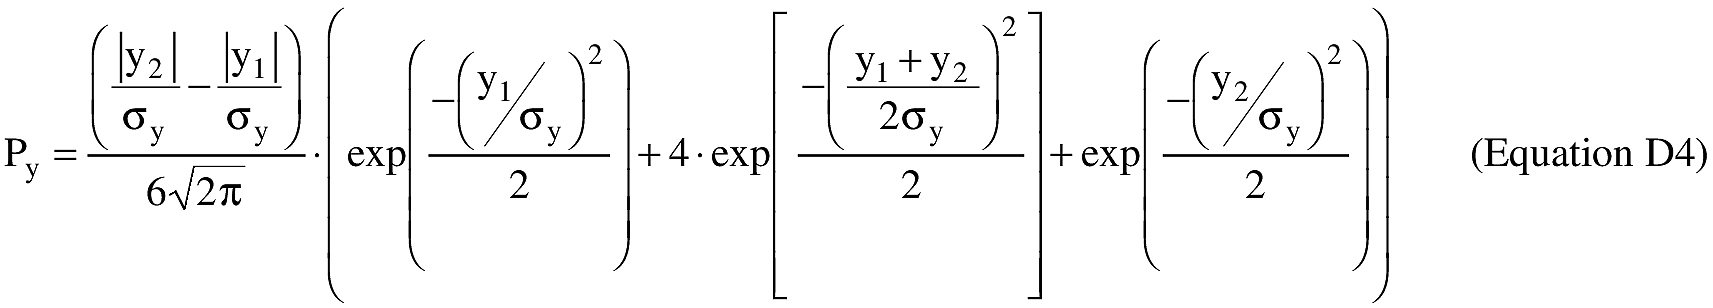 Equation for exp = exponential function (ex)